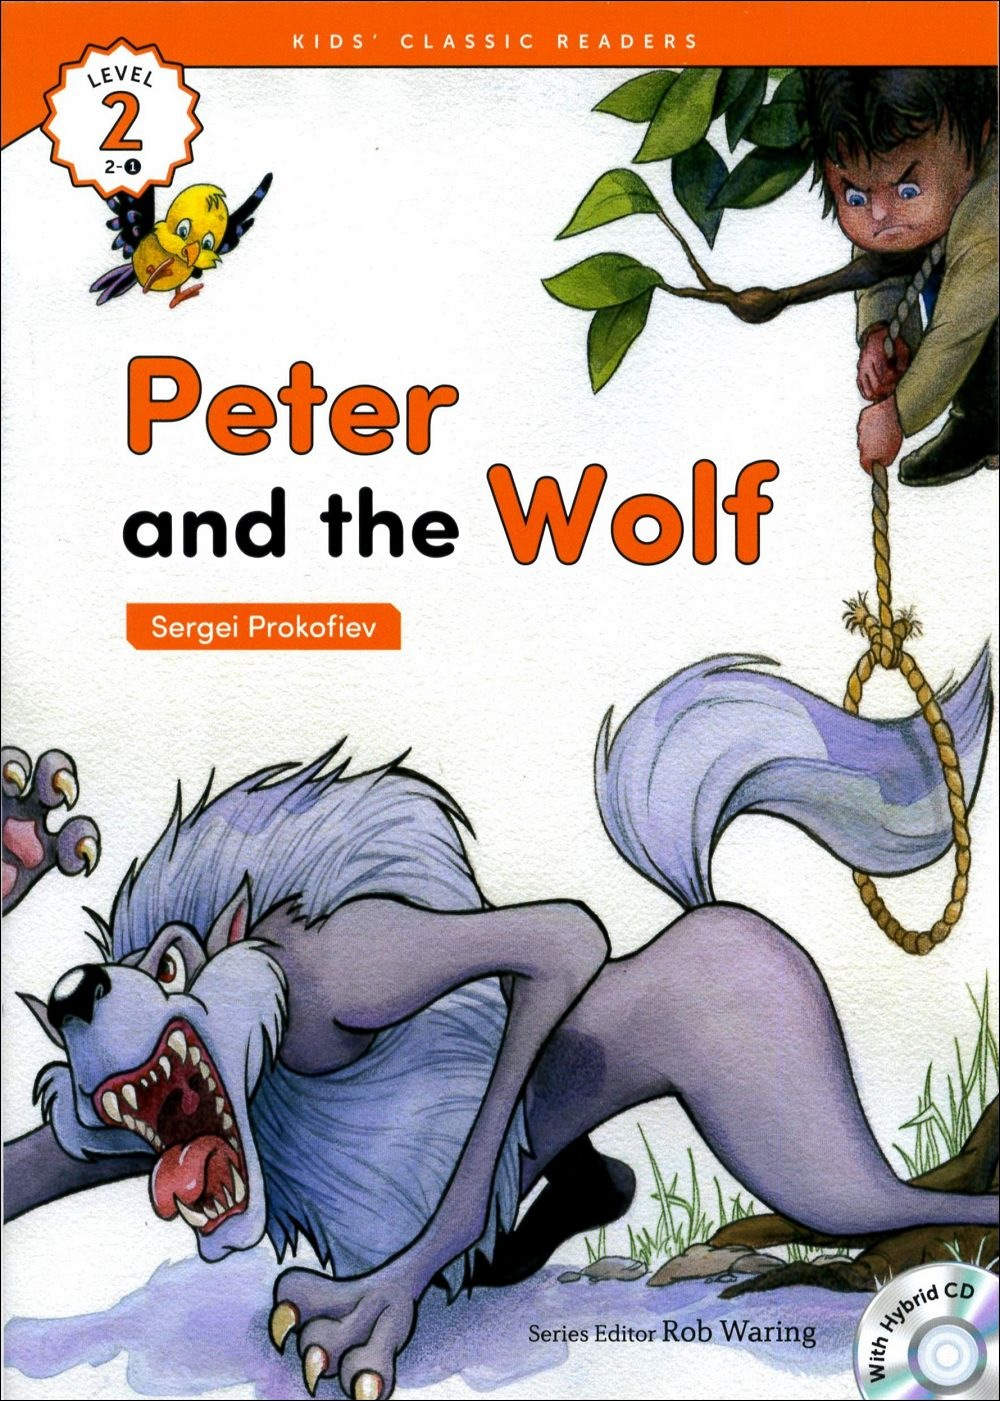 Kids' Classic Readers 2~1 Peter and the Wolf